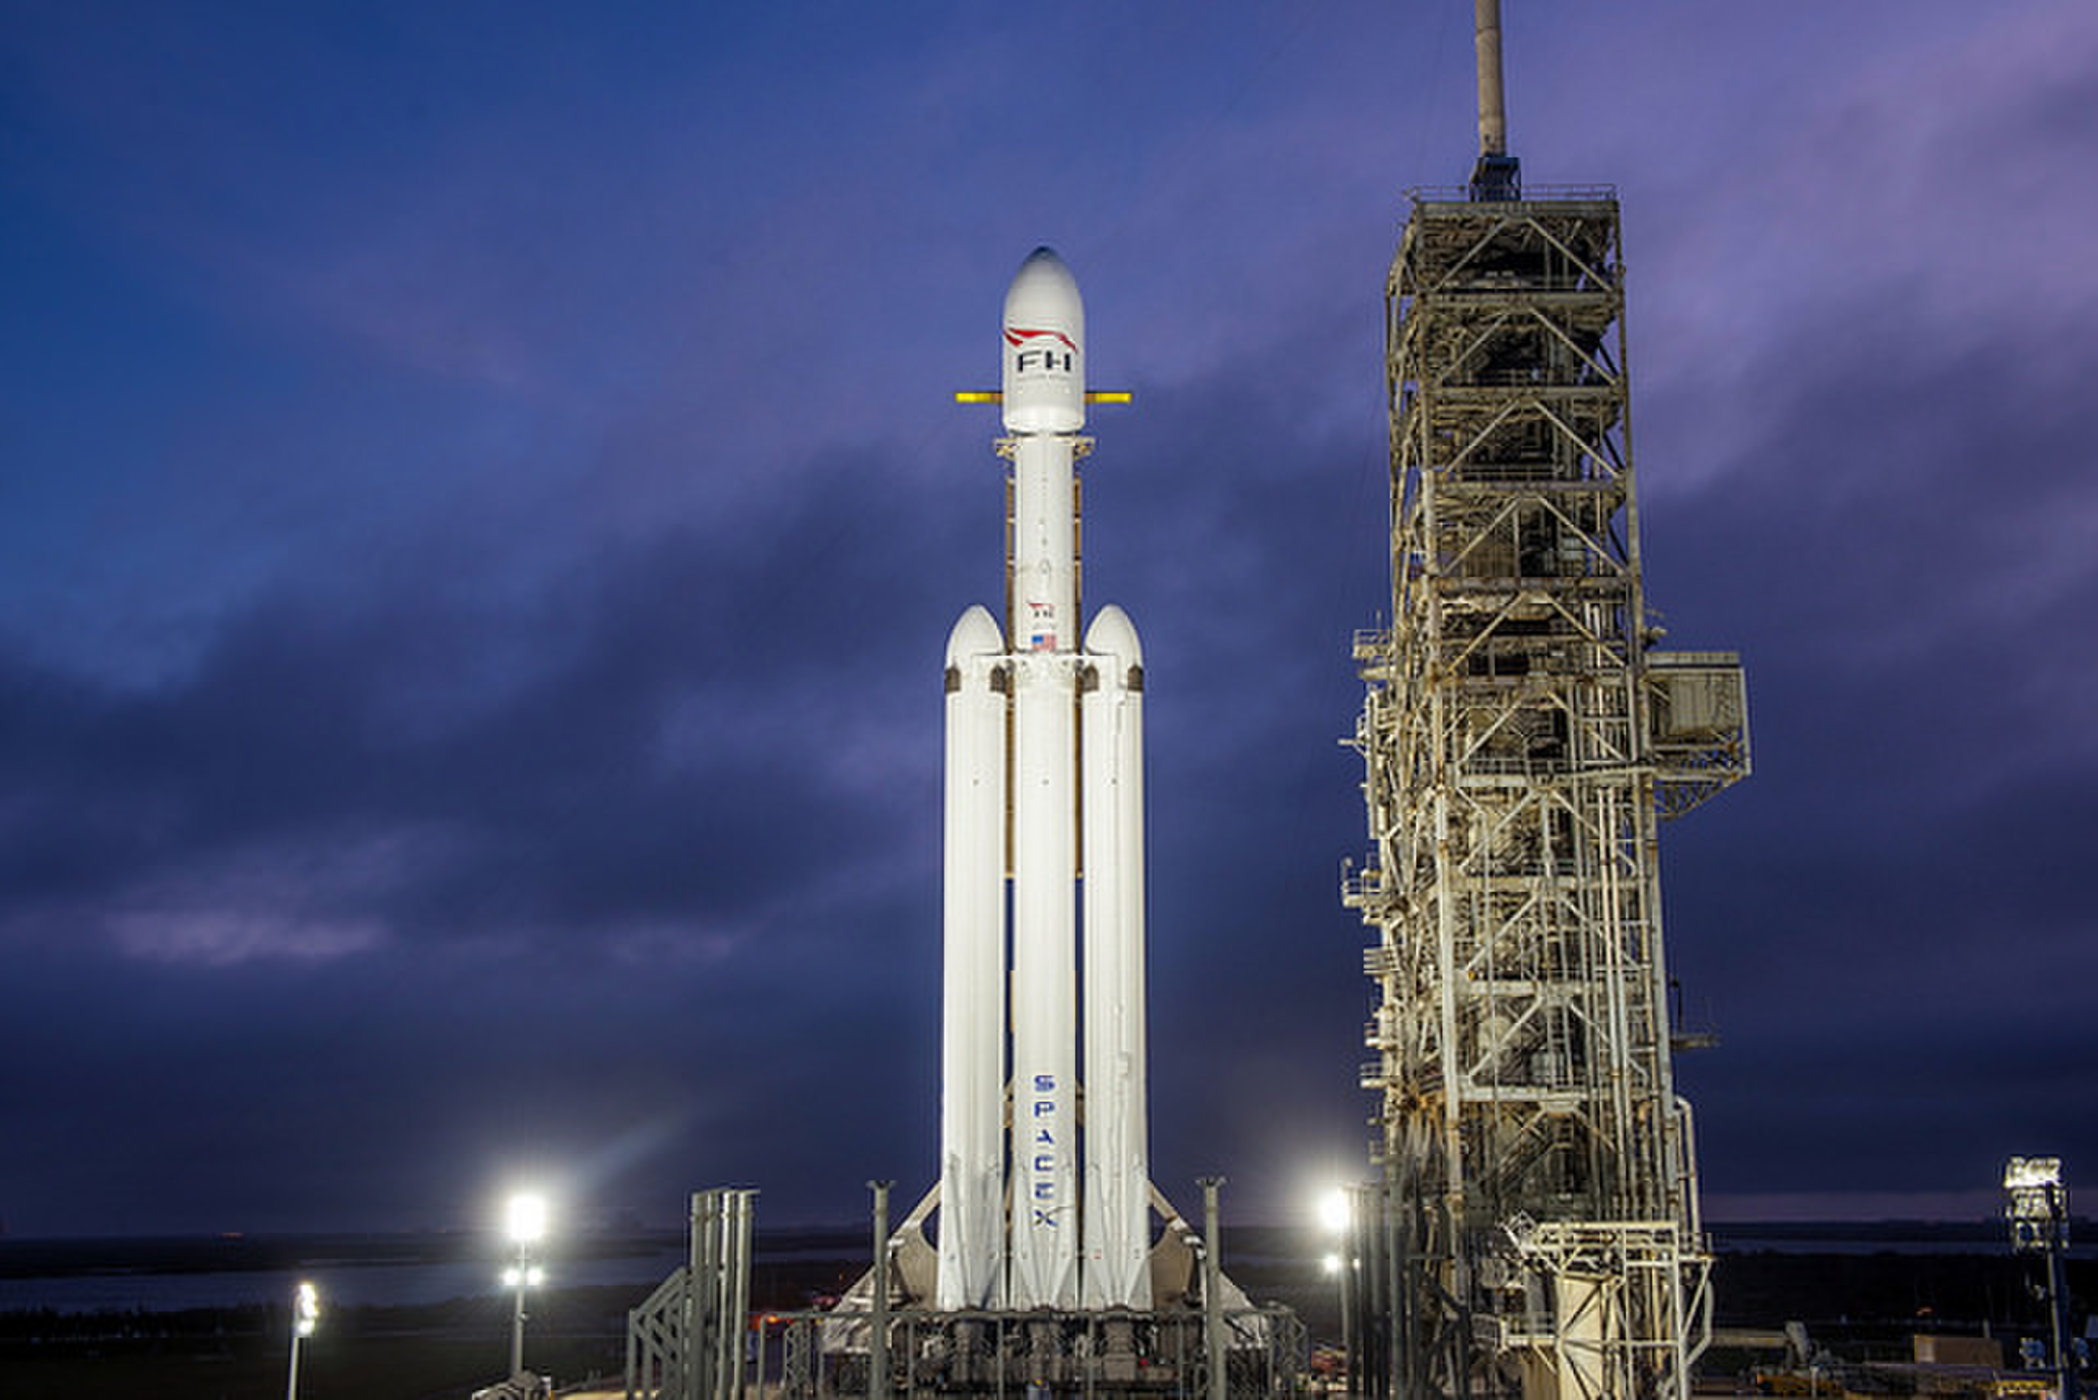 A night shot of the SpaceX Falcon Heavy rocket standing upright at NASA's launchpad 39A.